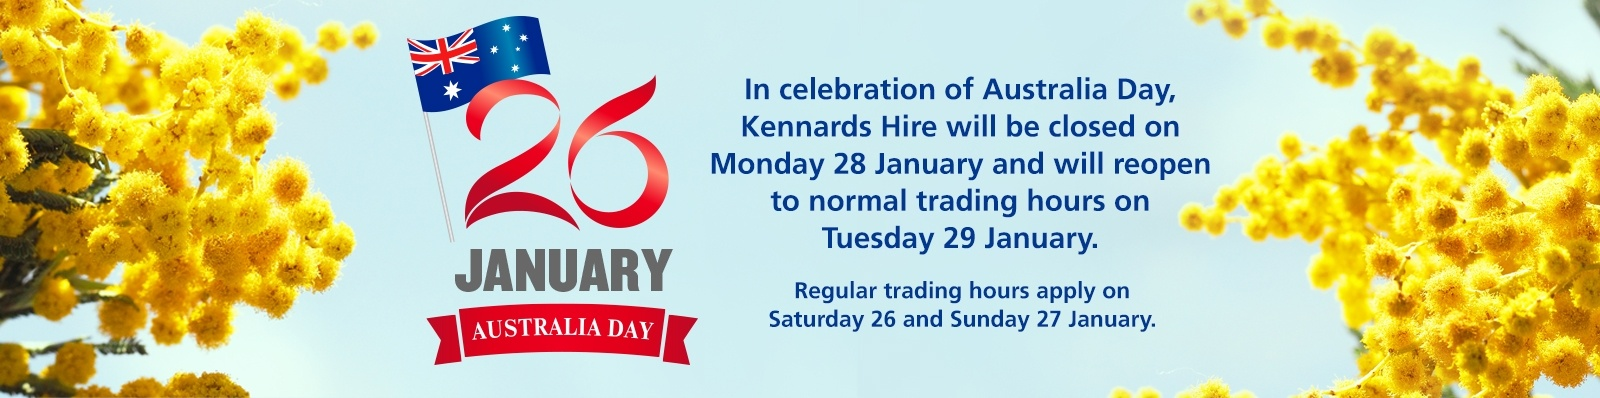 Find out your local branch's holiday trading hours